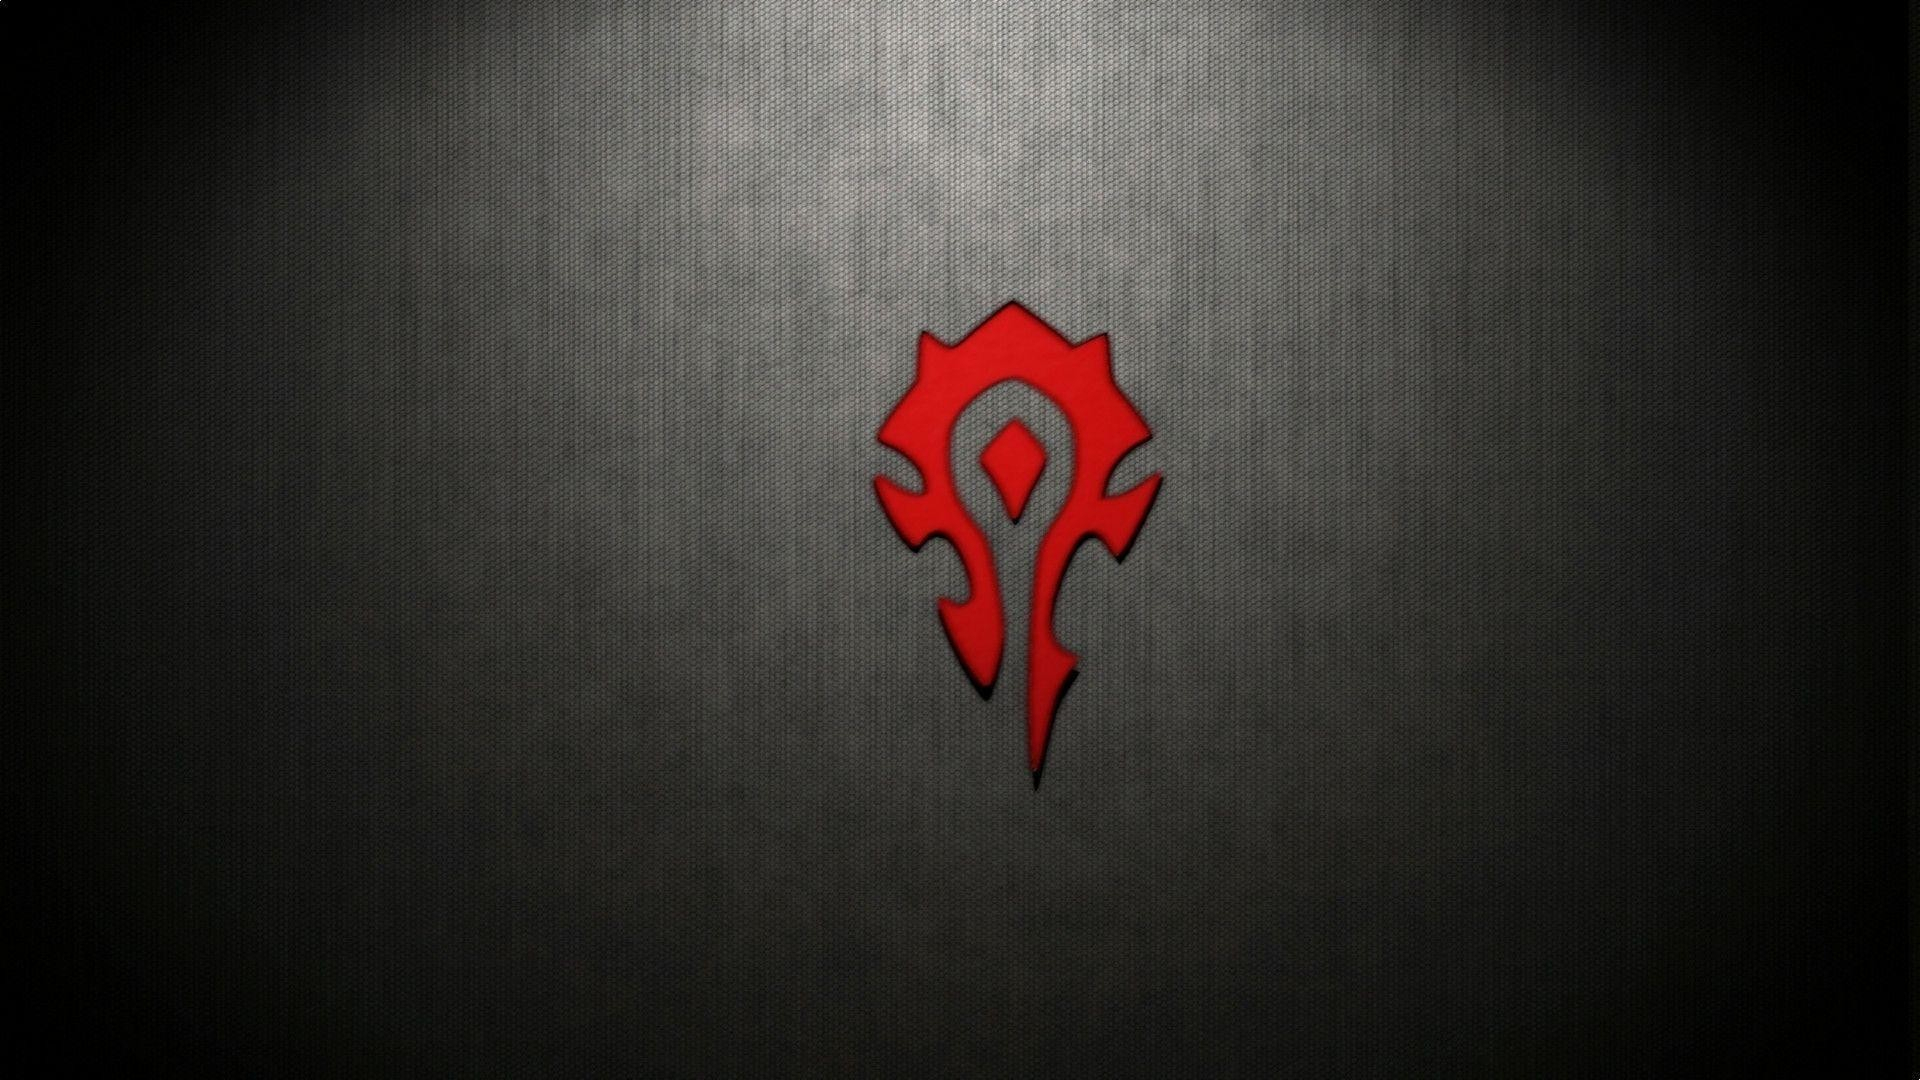 65+ wow horde wallpapers on wallpaperplay